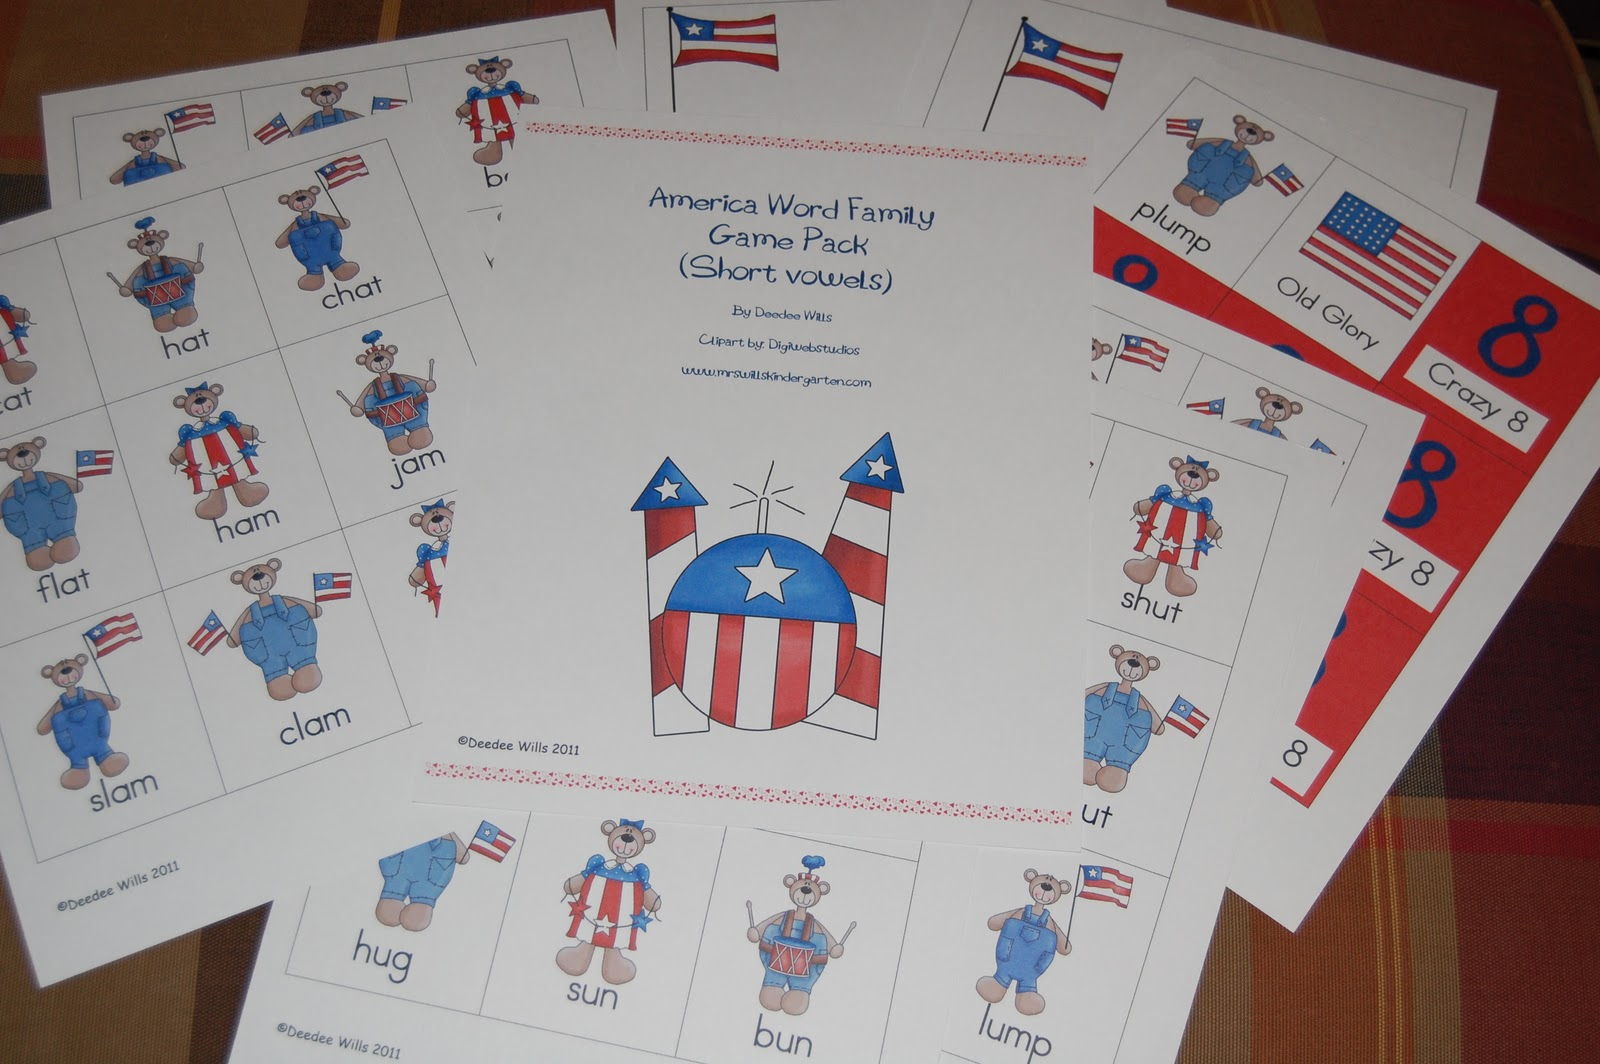 America Word Family Games